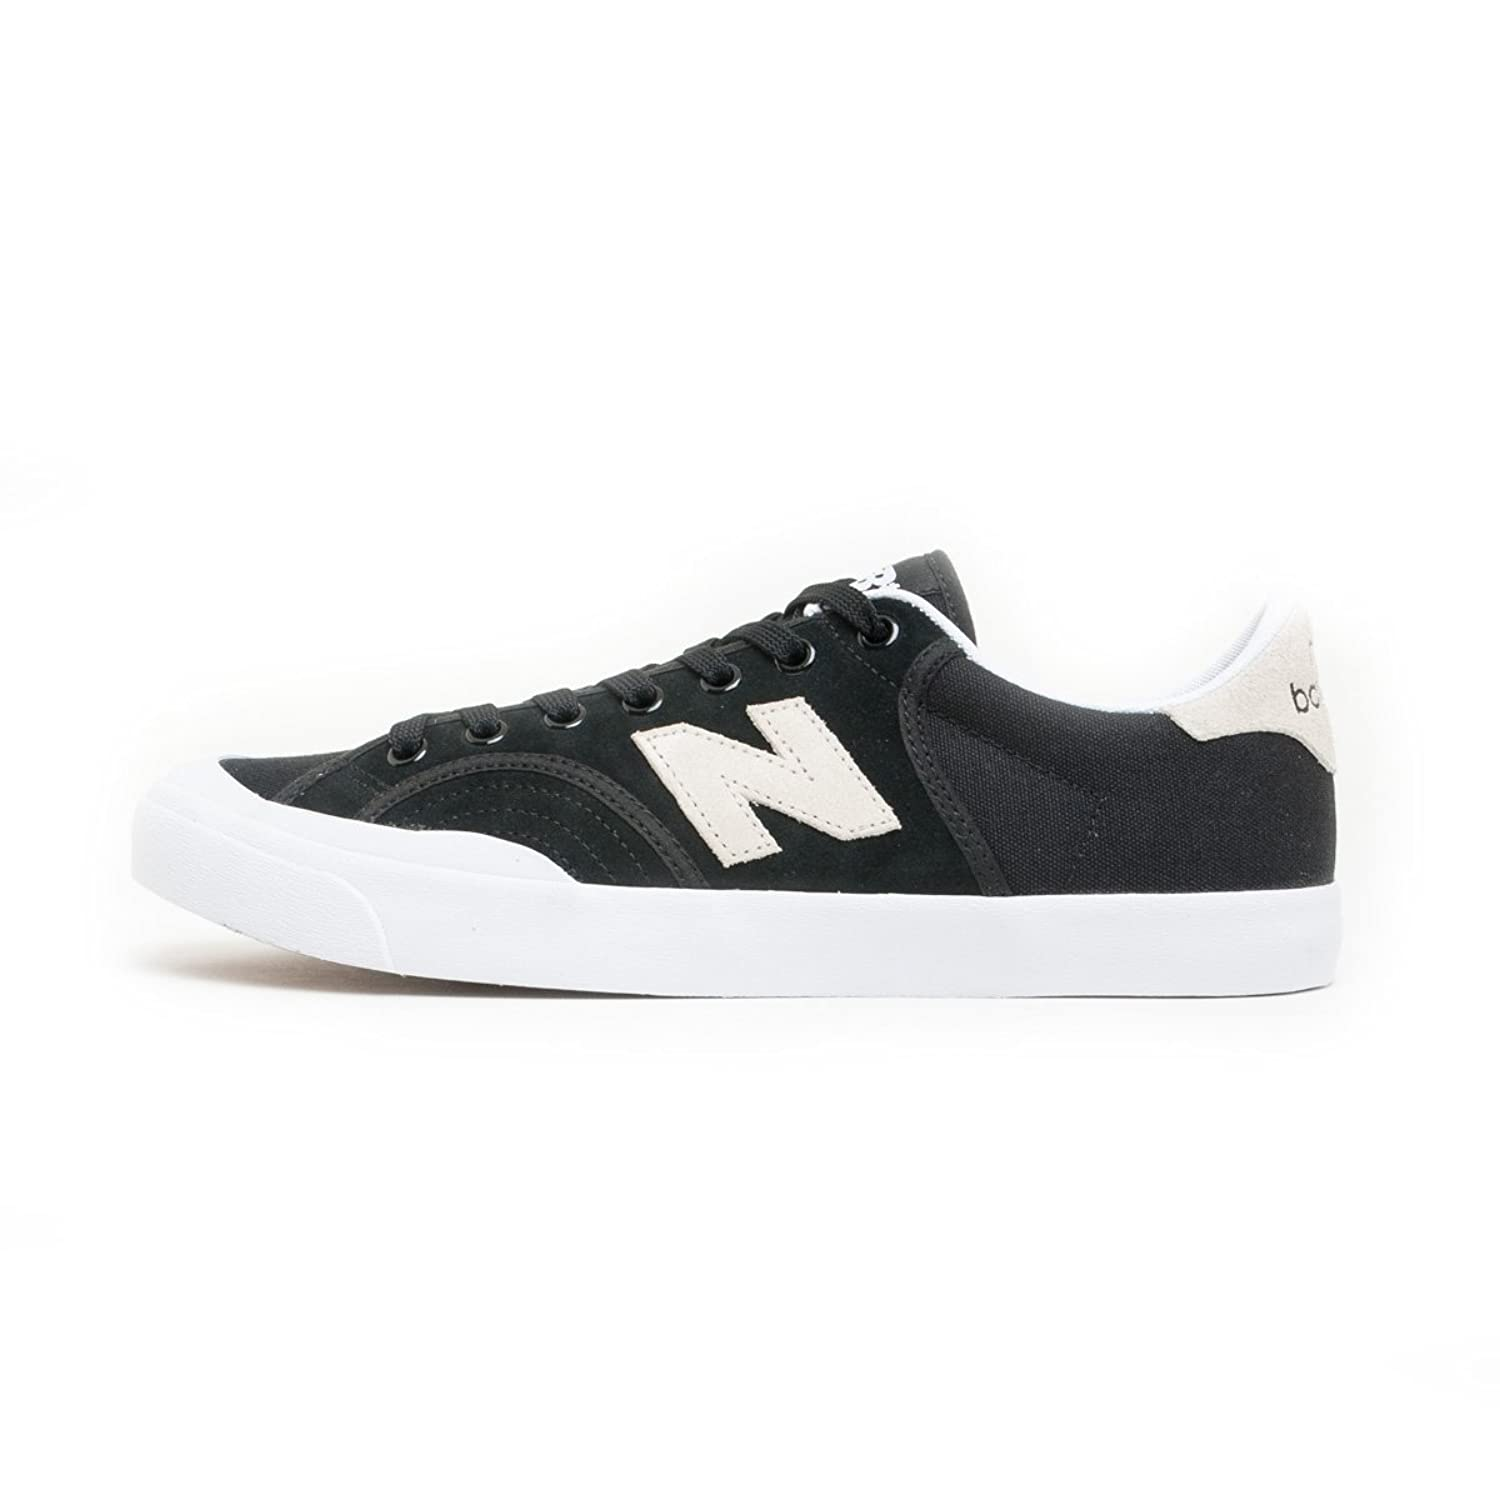 New Balance Men's Nm212evg